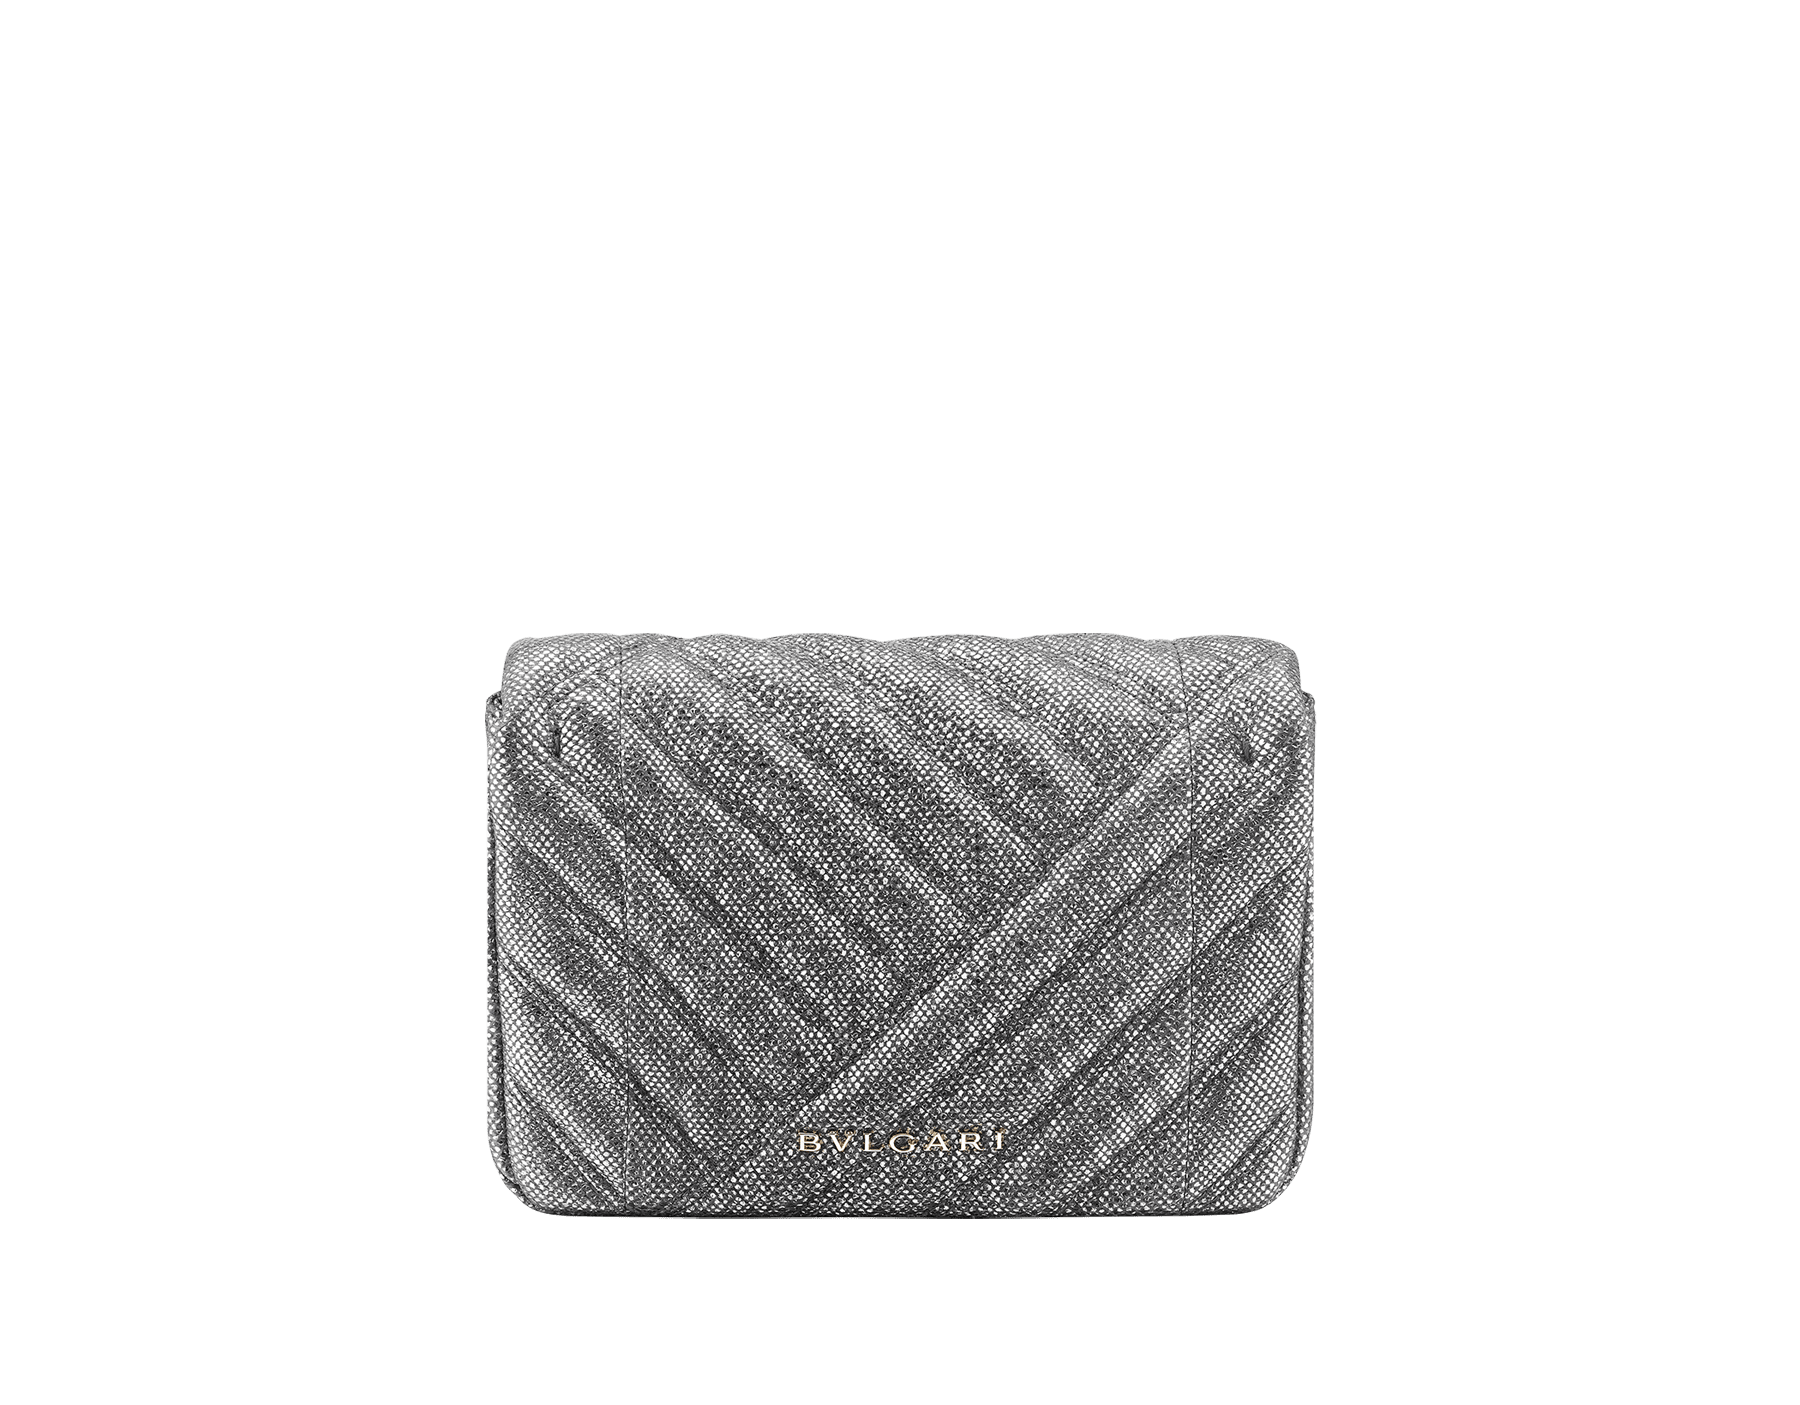 Serpenti Cabochon micro bag in soft matelassé charcoal diamond metallic karung, with a graphic motif. Tempting light gold brass-plated snake head closure in black and glitter charcoal diamond enamel and black onyx eyes. 288806 image 3